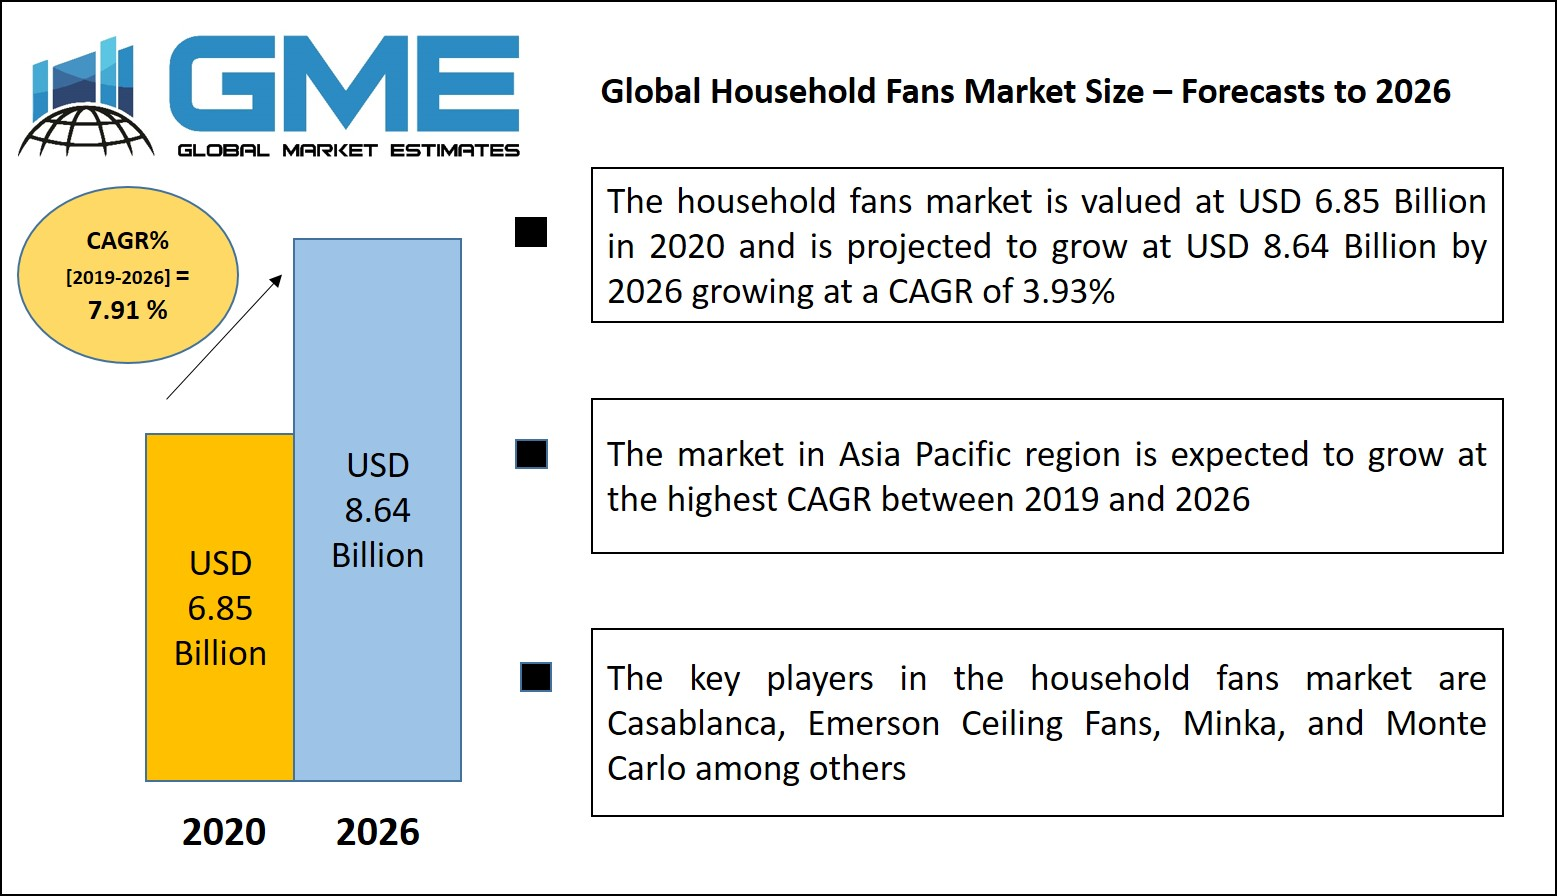 Global Household Fans Market Size – Forecasts to 2026